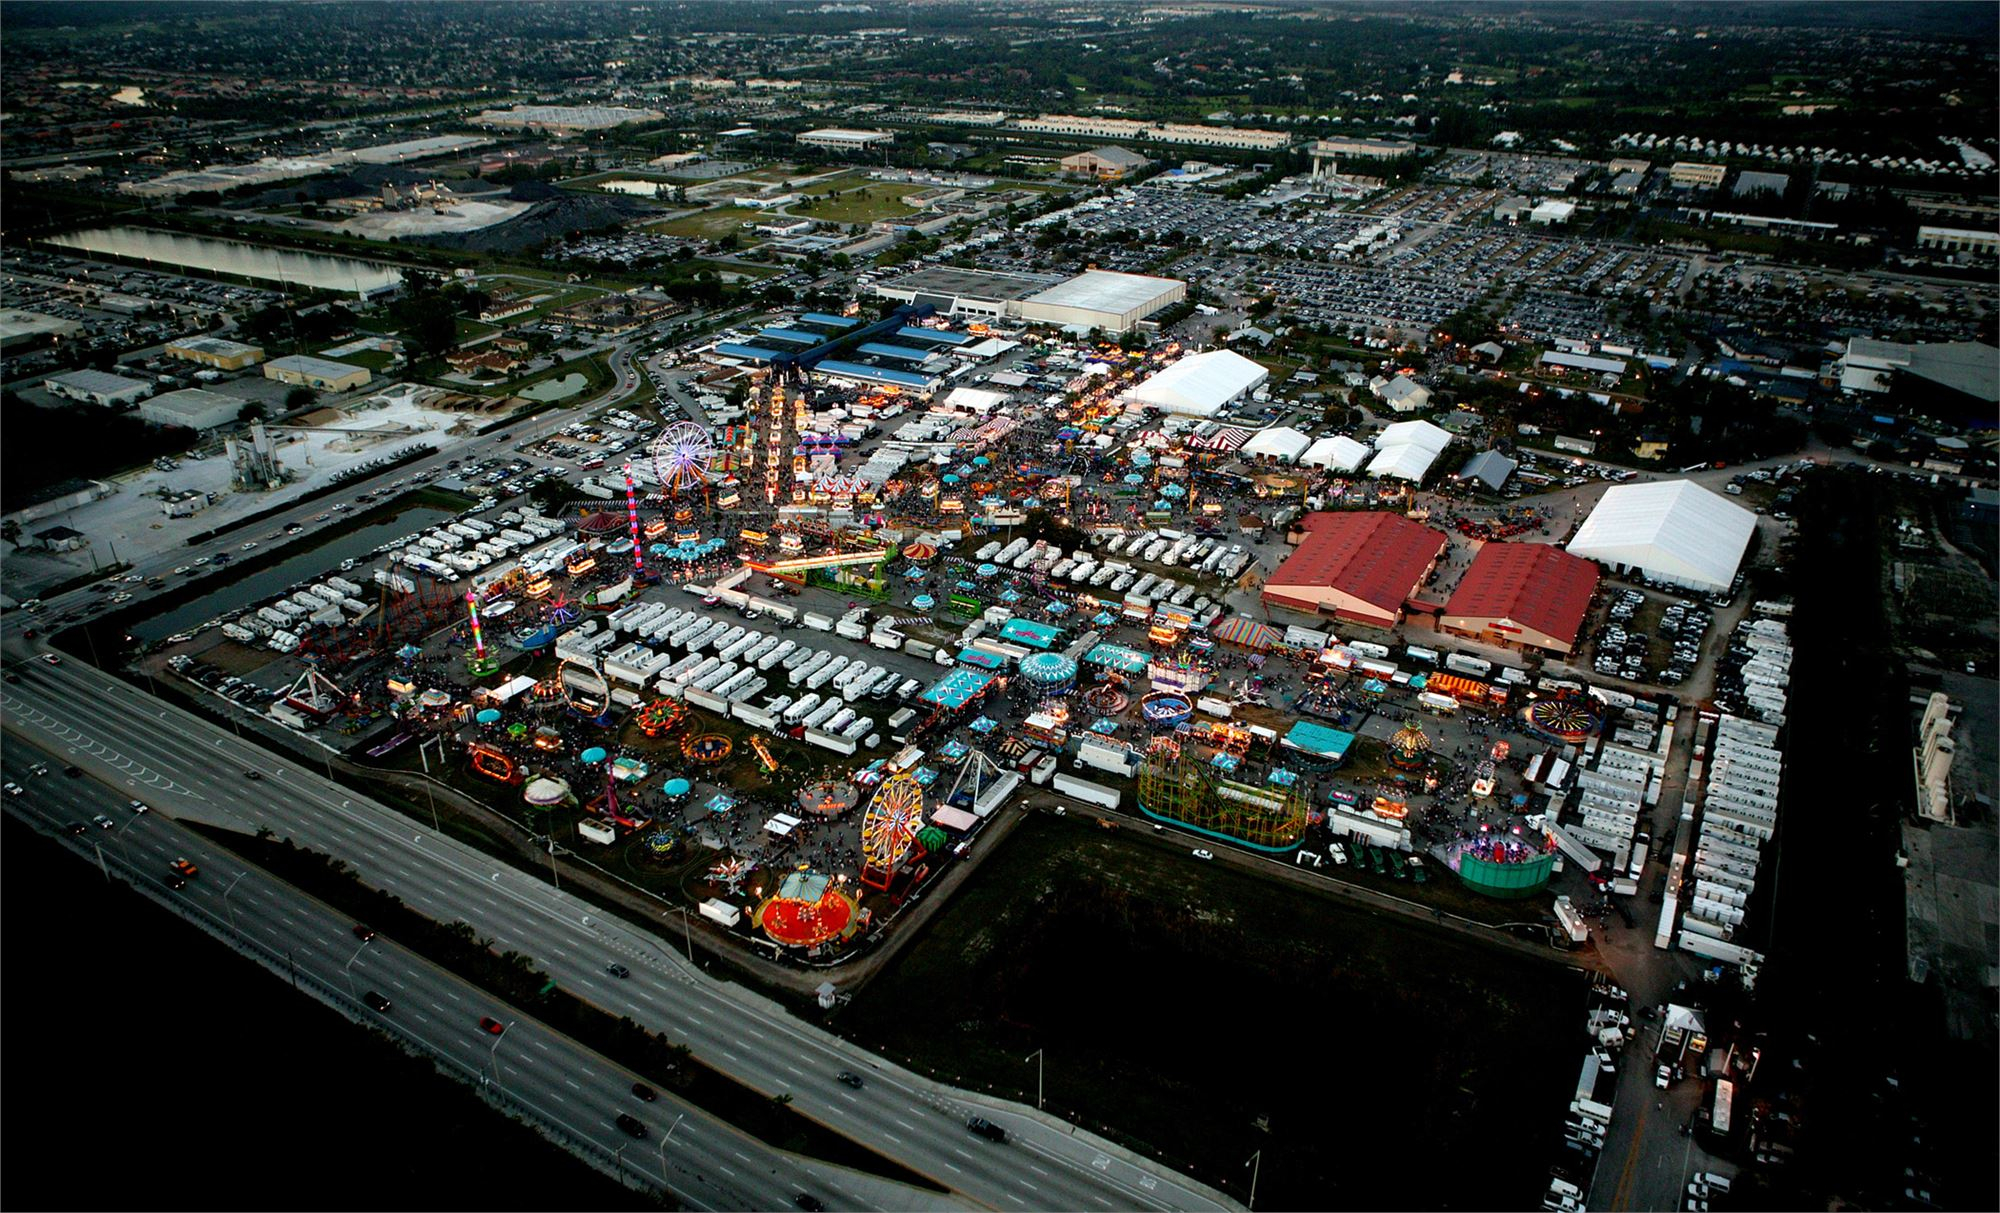 South Florida Fair | West Palm Beach, Fl | 561.793.0333 Regarding South Florida Fair 2021